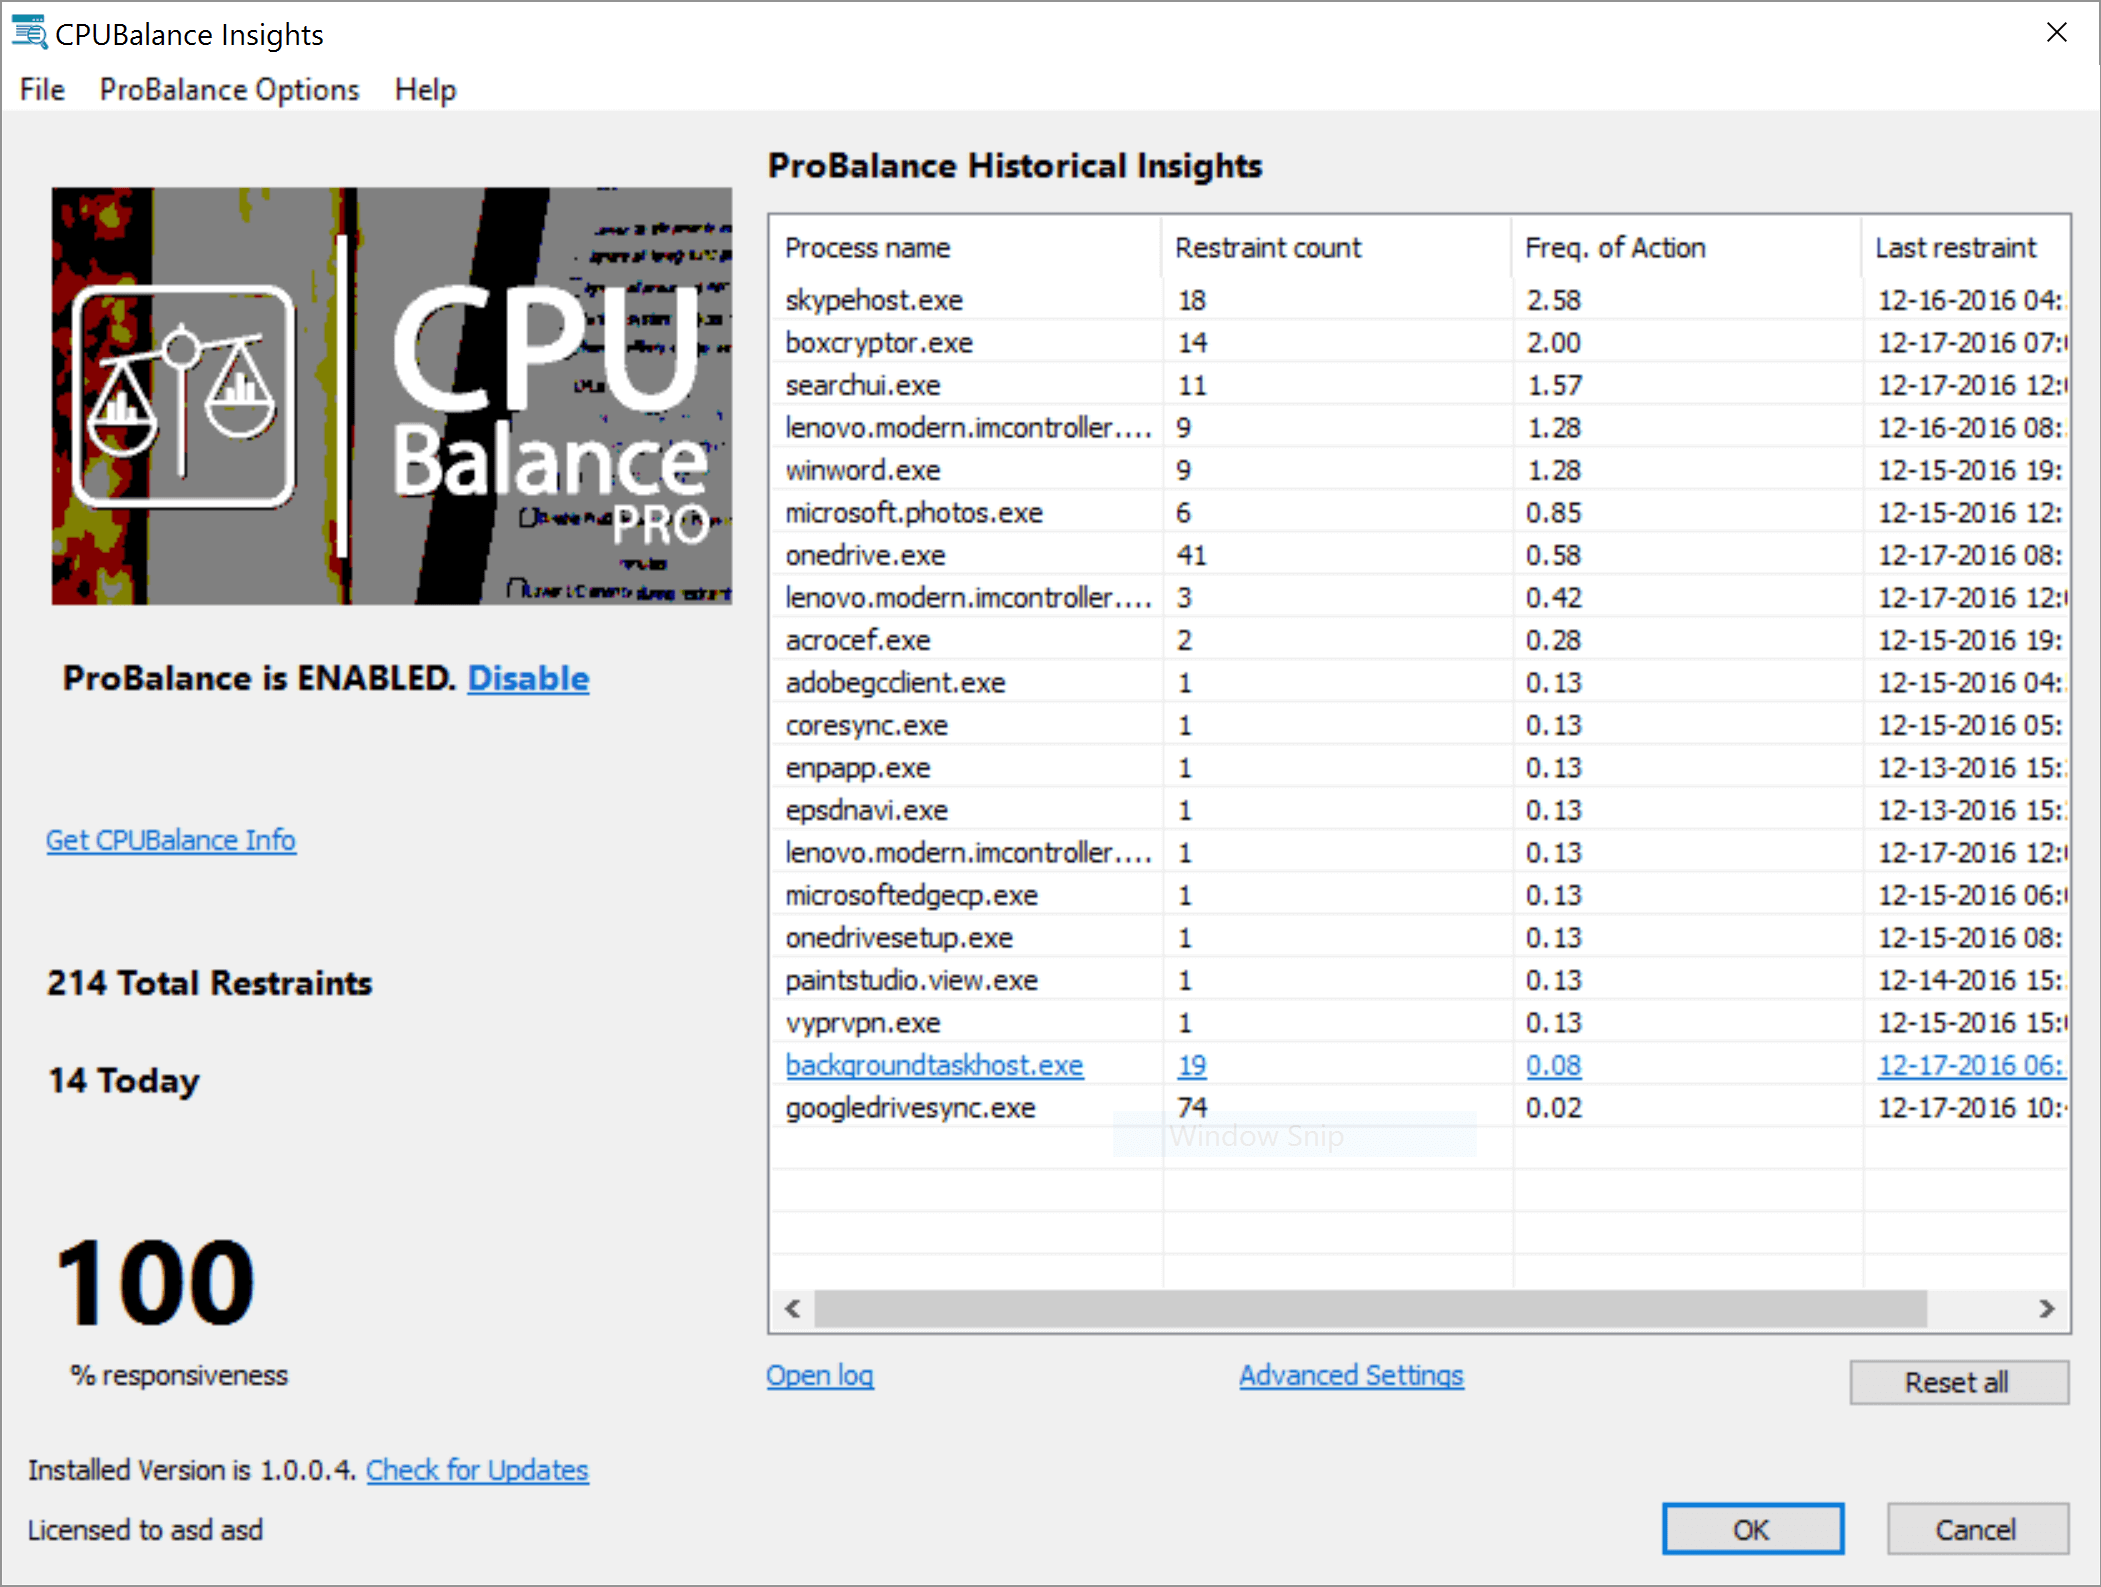 CPUBalance Insights Screenshot